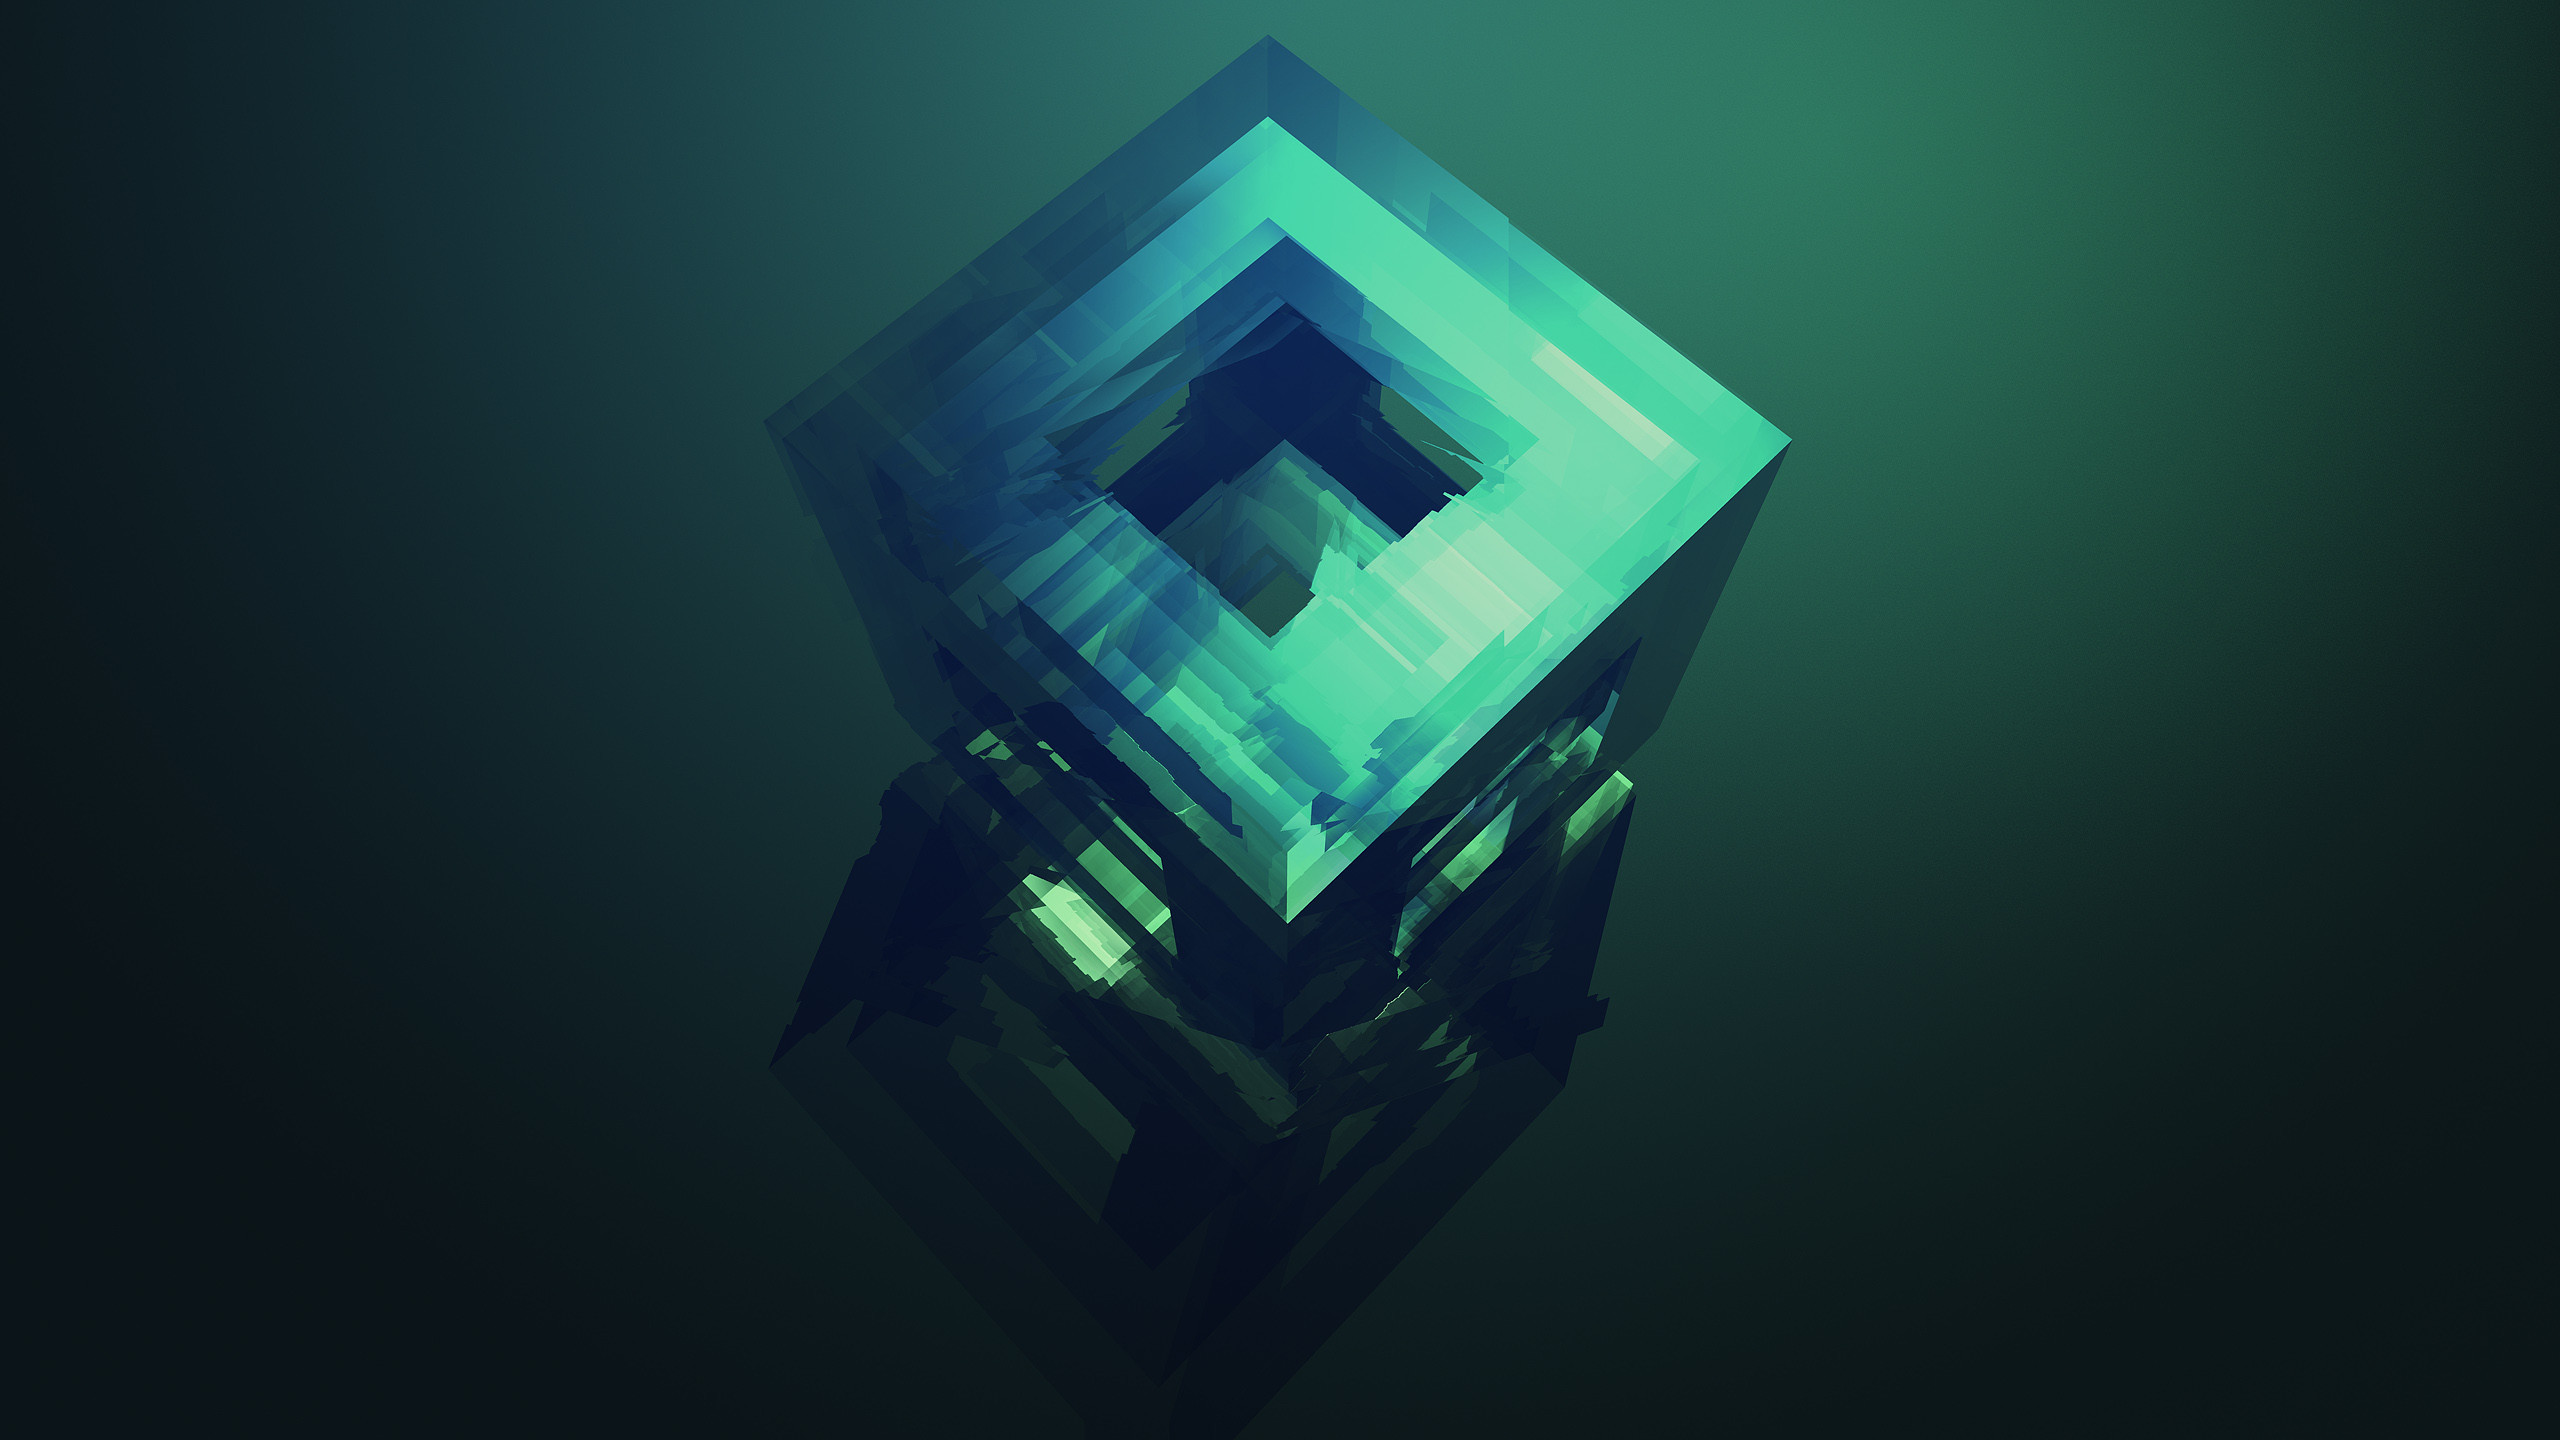 Wallpaper from Justin Maller's FACETS collection